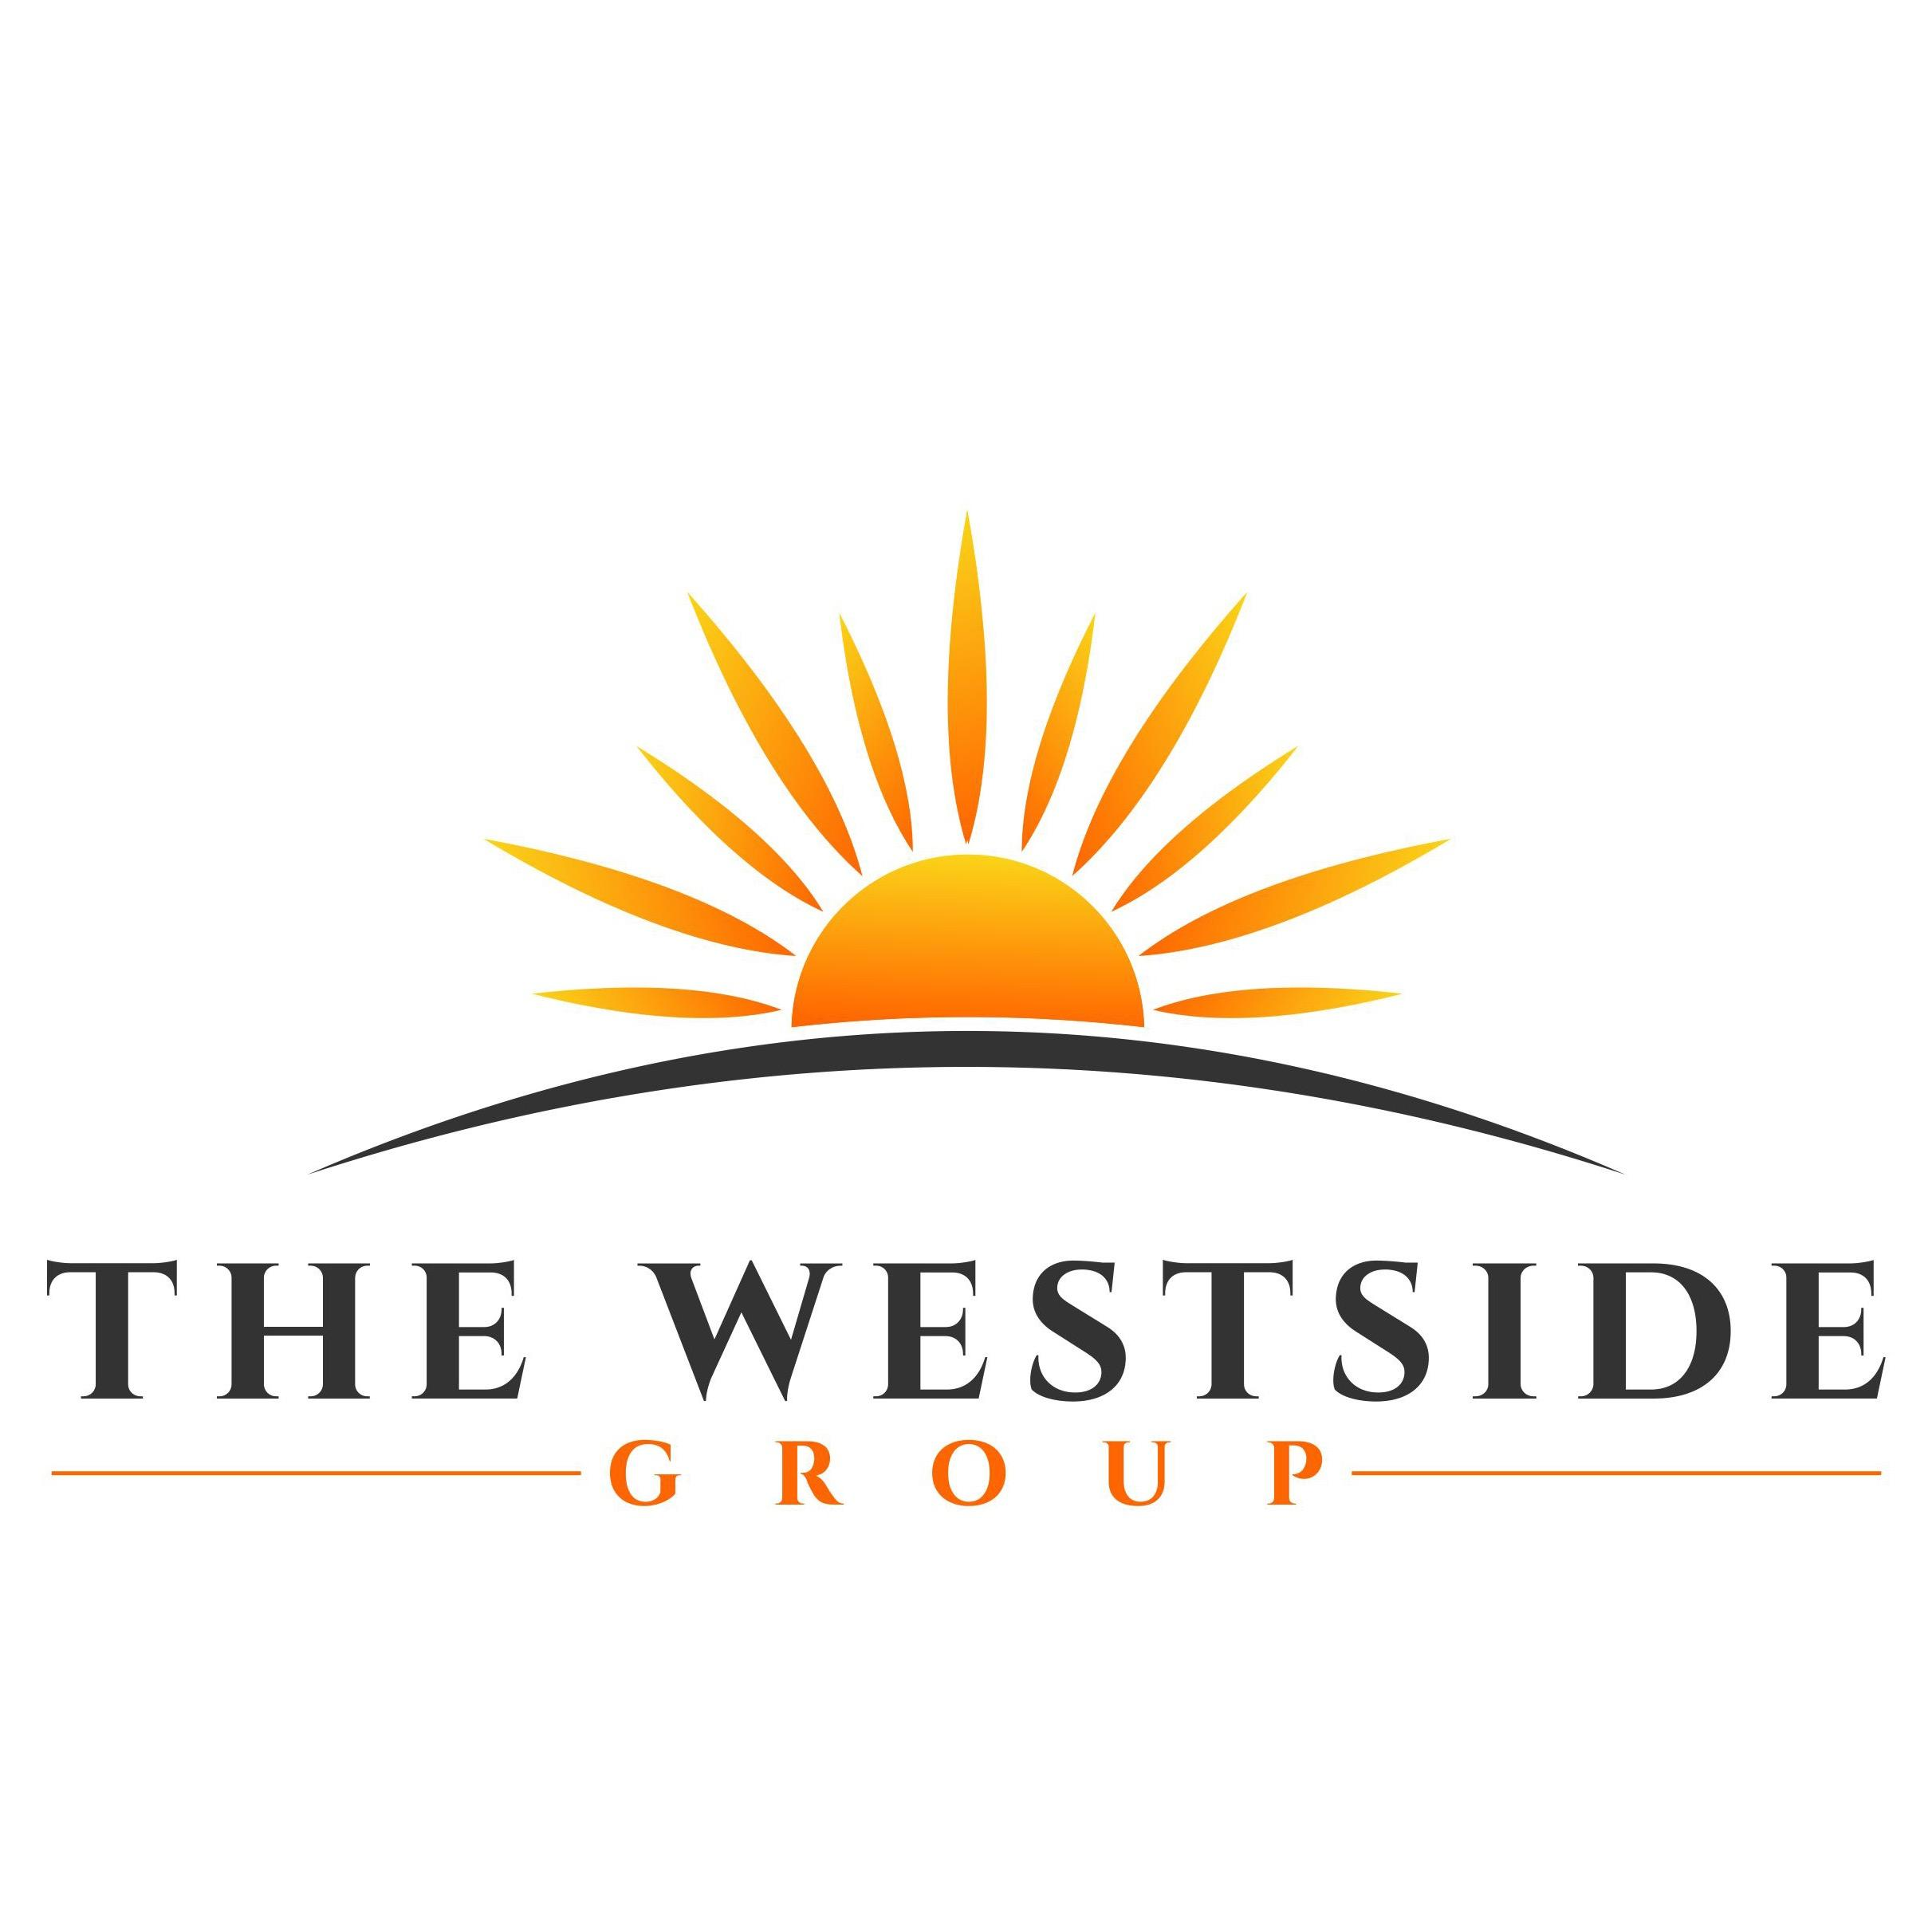 The Westside Group, Inc